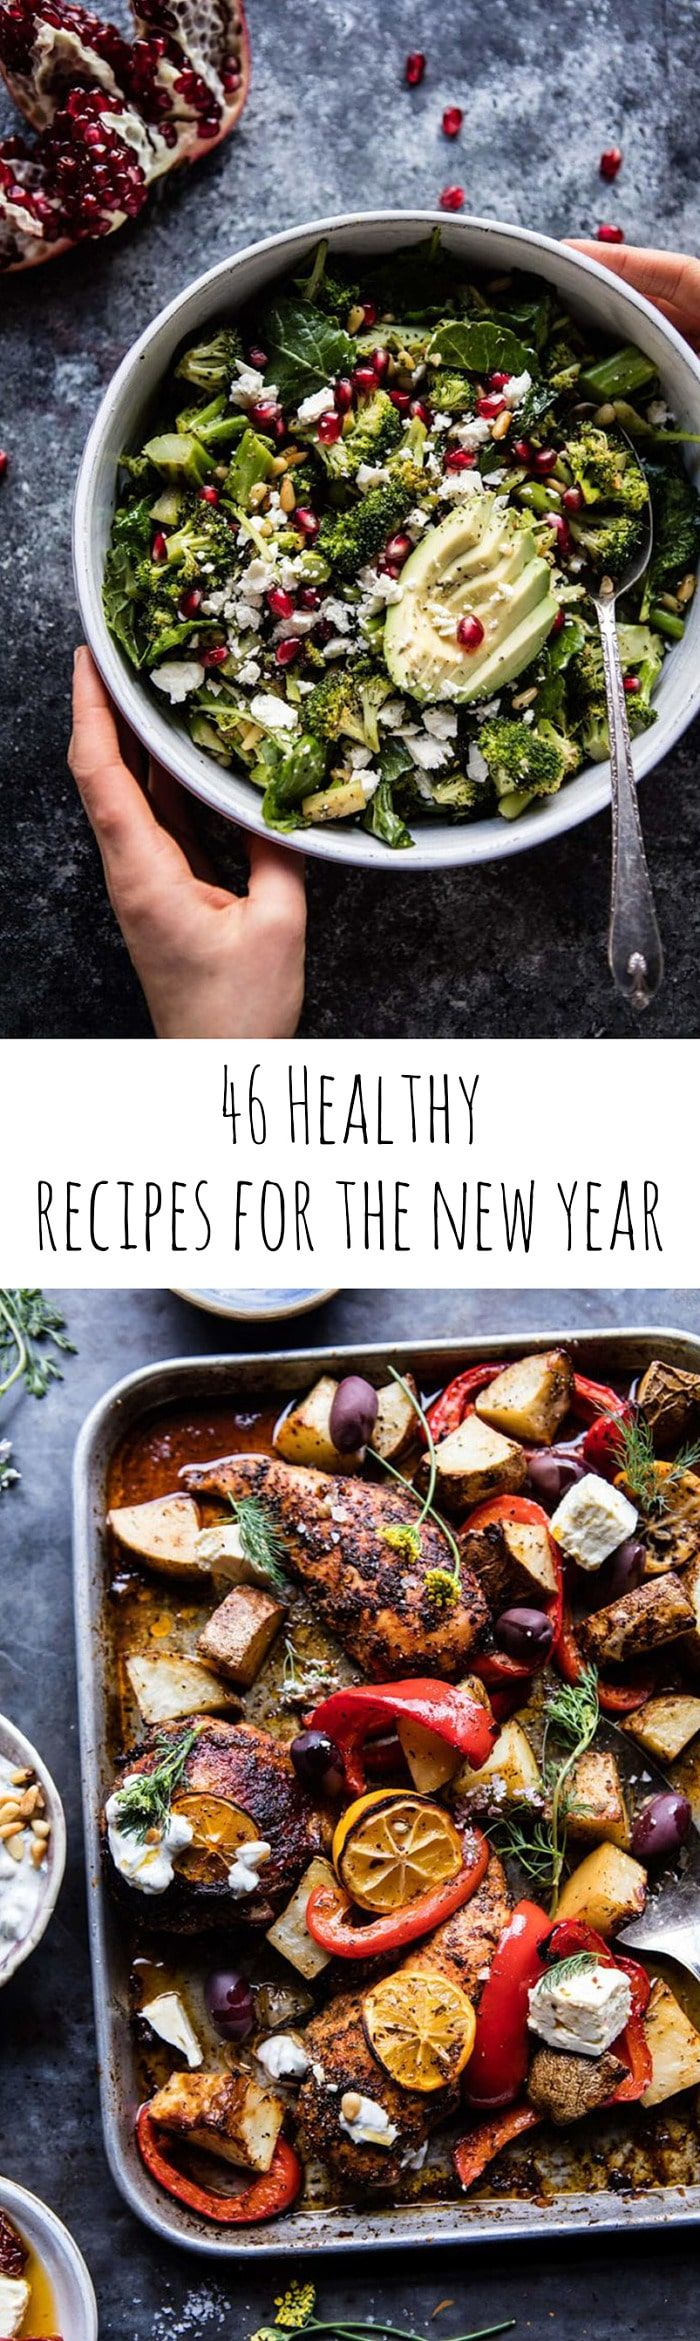 My 46 Favorite Healthy Recipes for the New Year | halfbakedharvest.com @hbharvest